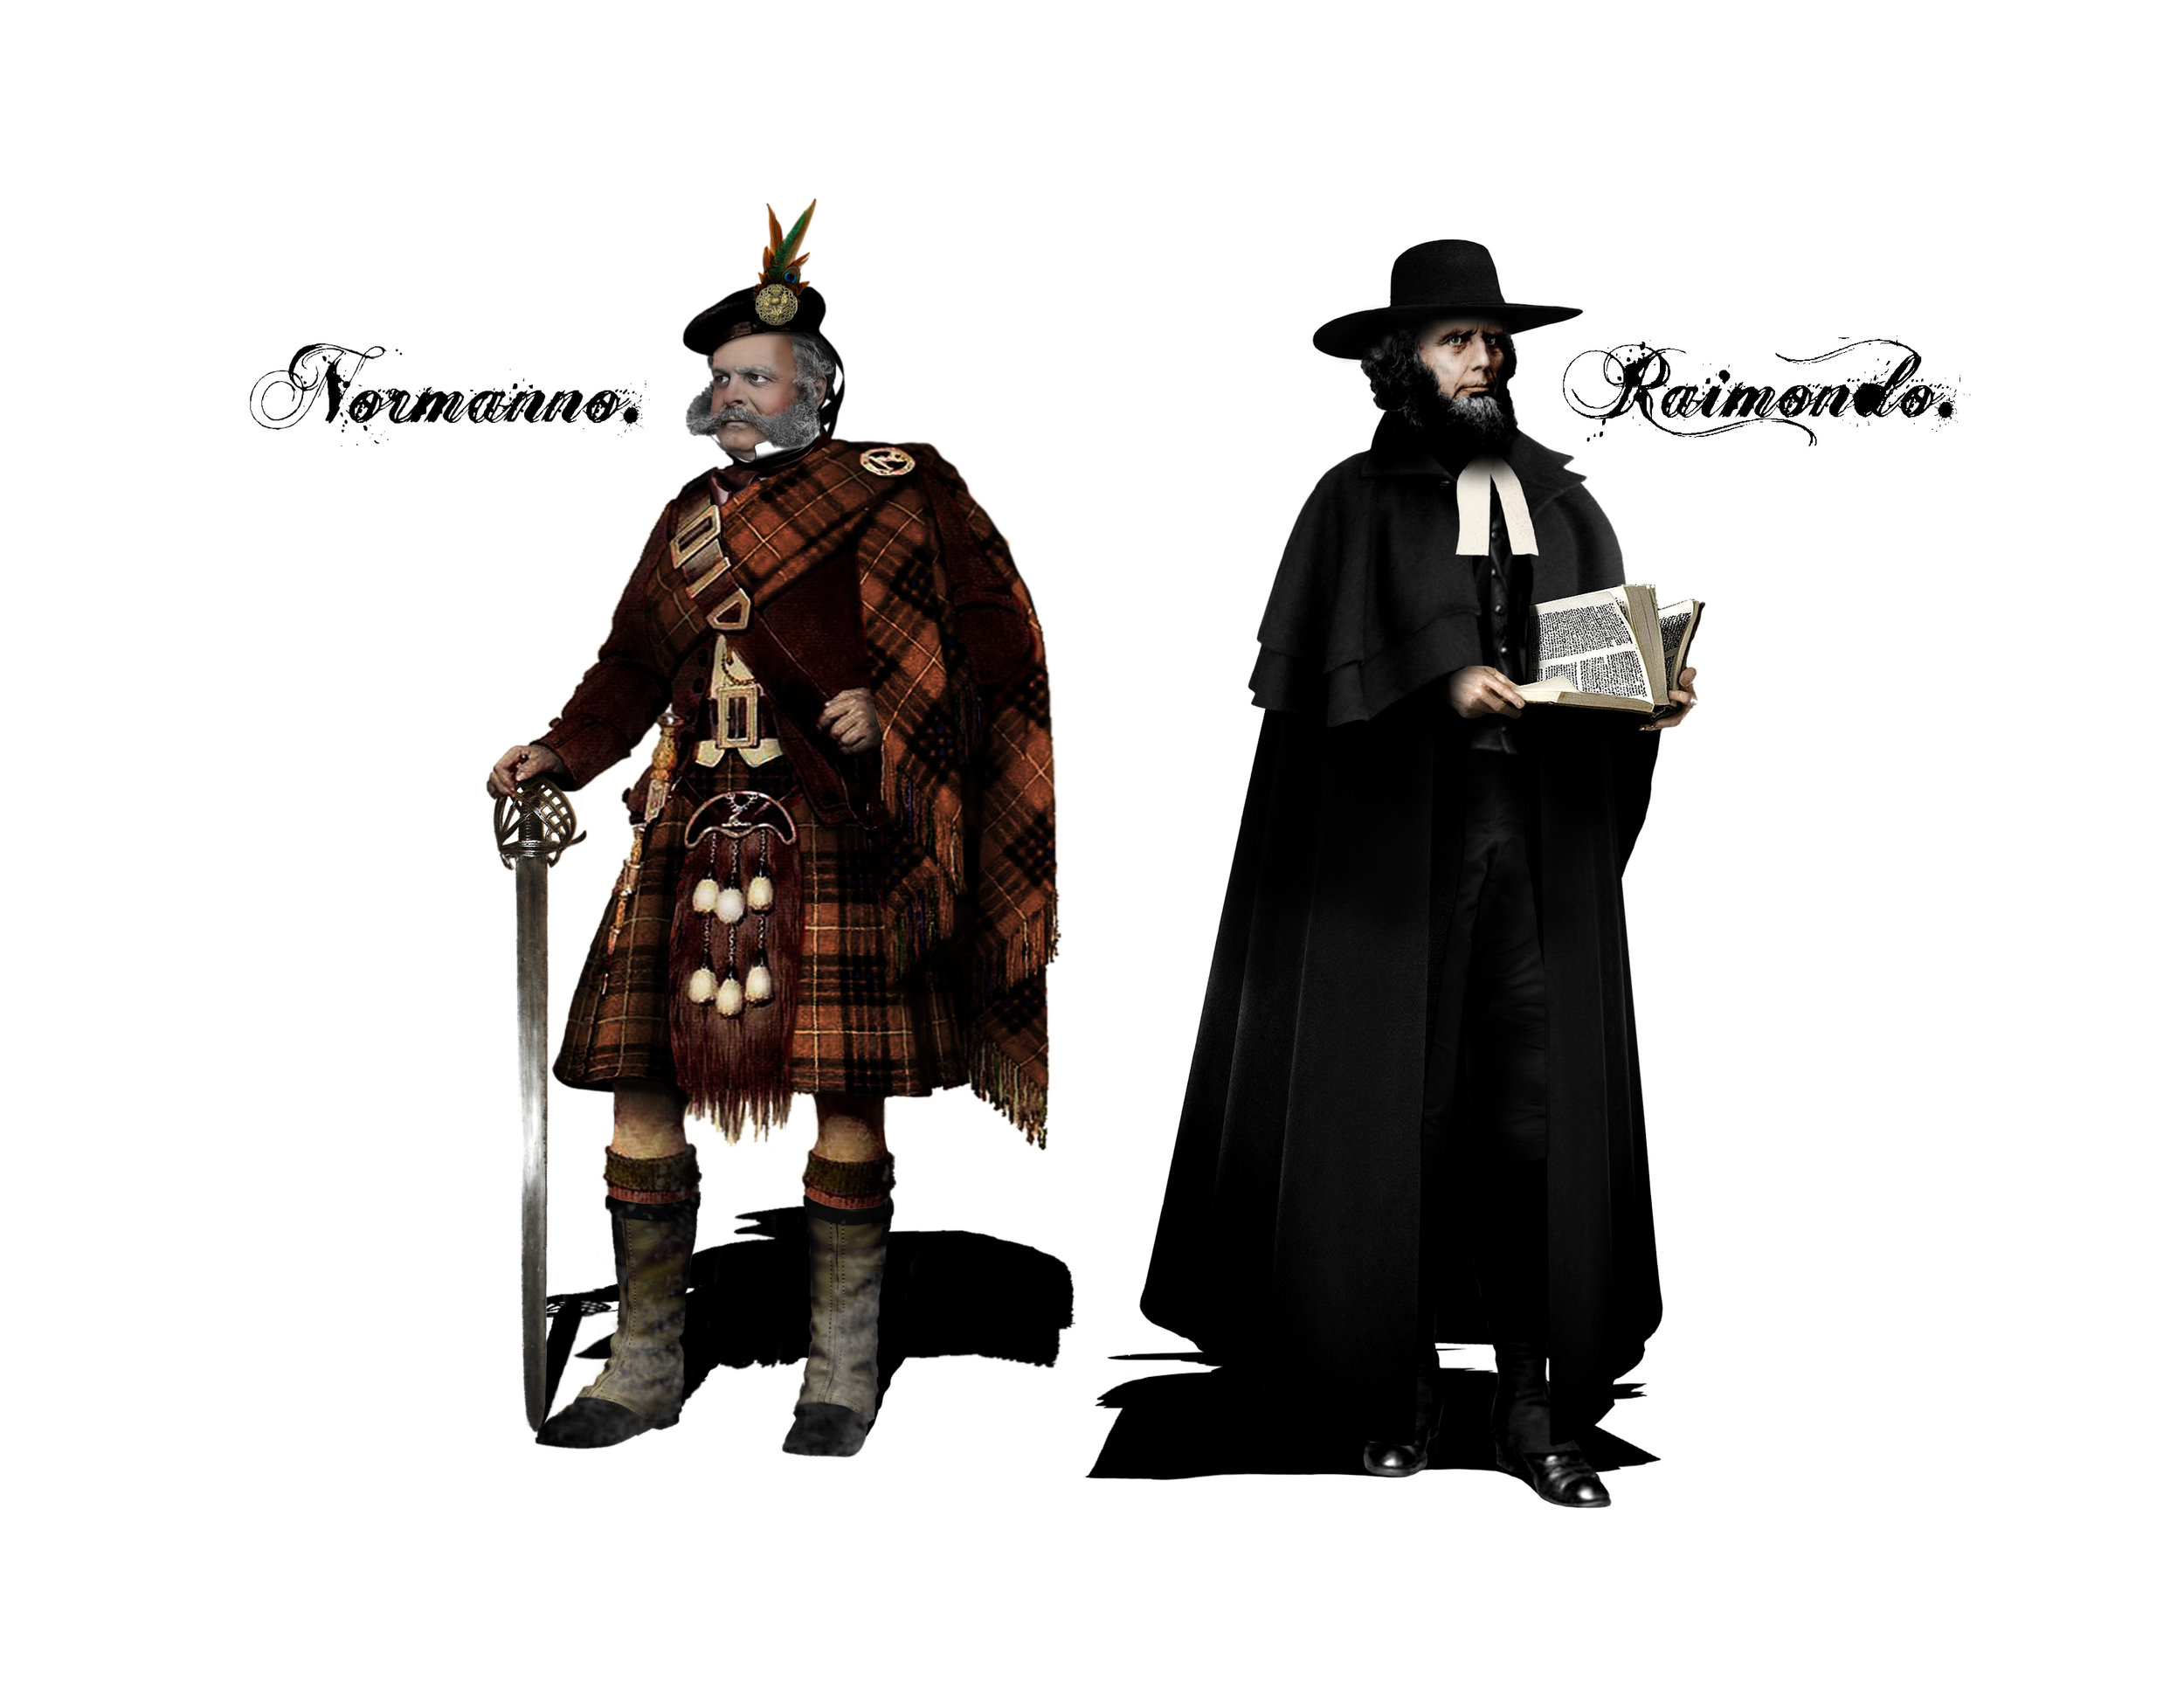 NORMANNO & RAIMONDO - Costume Designs